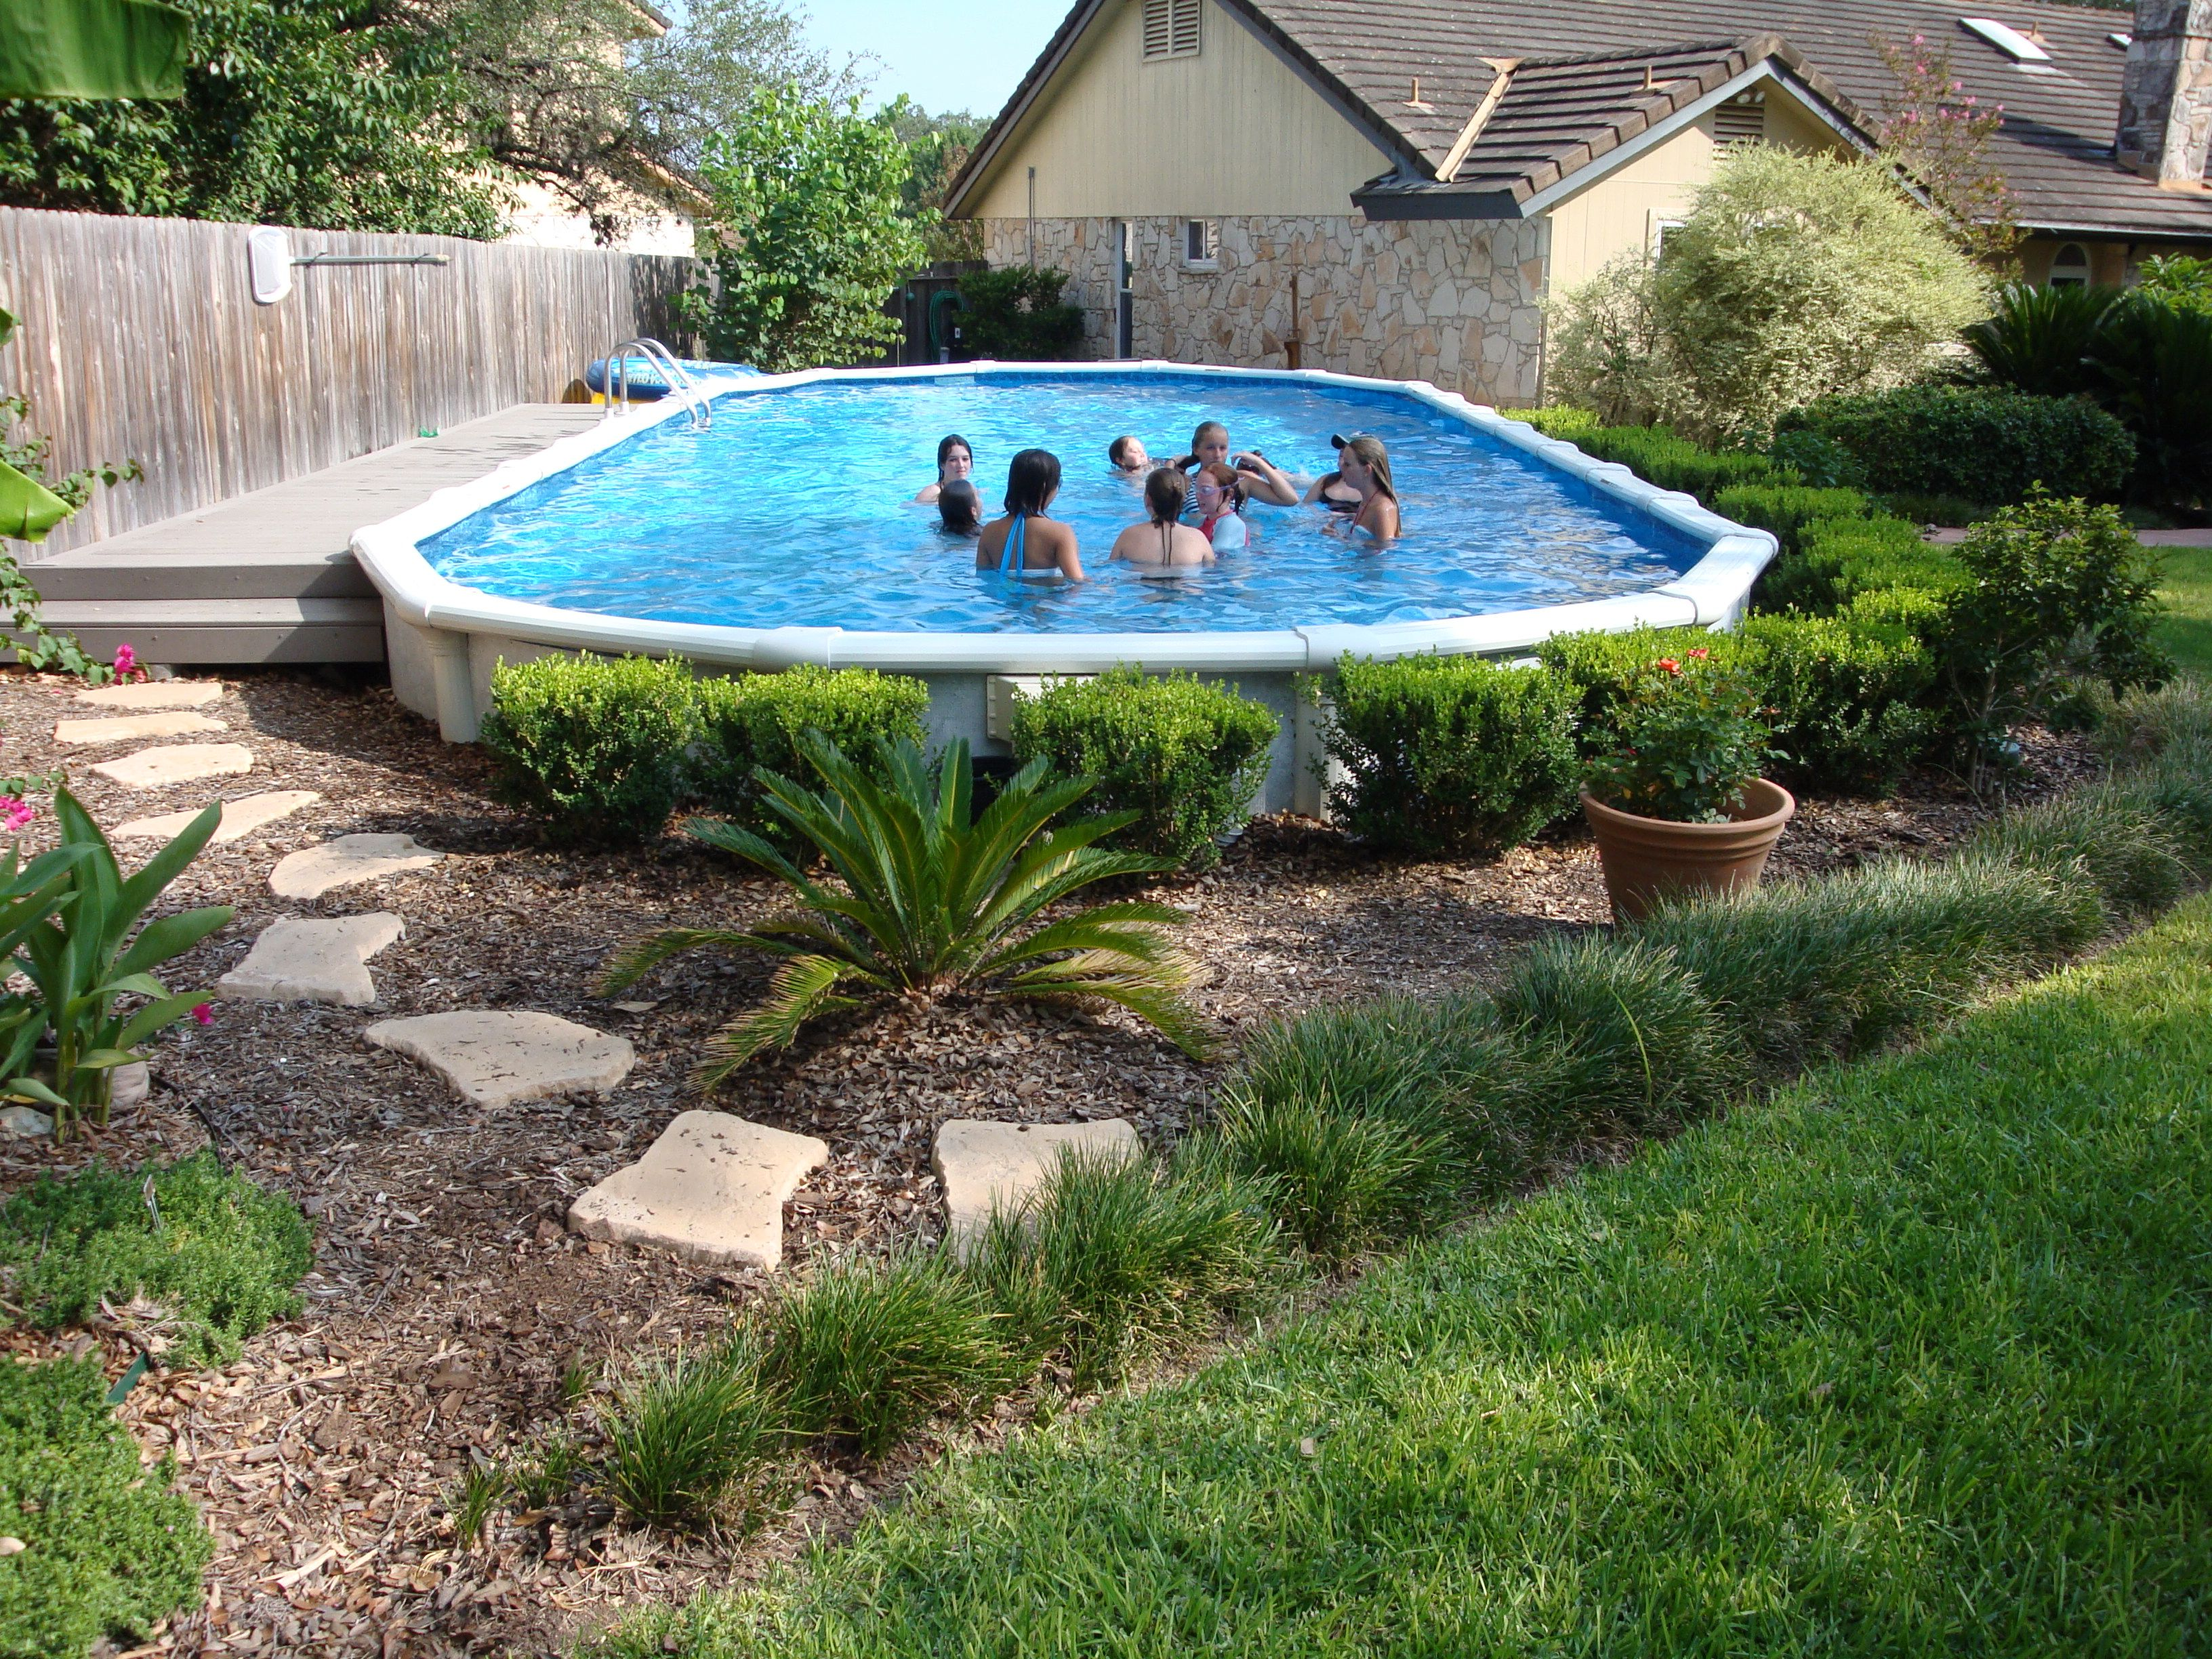 Pool Barriers | Above ground pool landscaping, Pool landscape ...